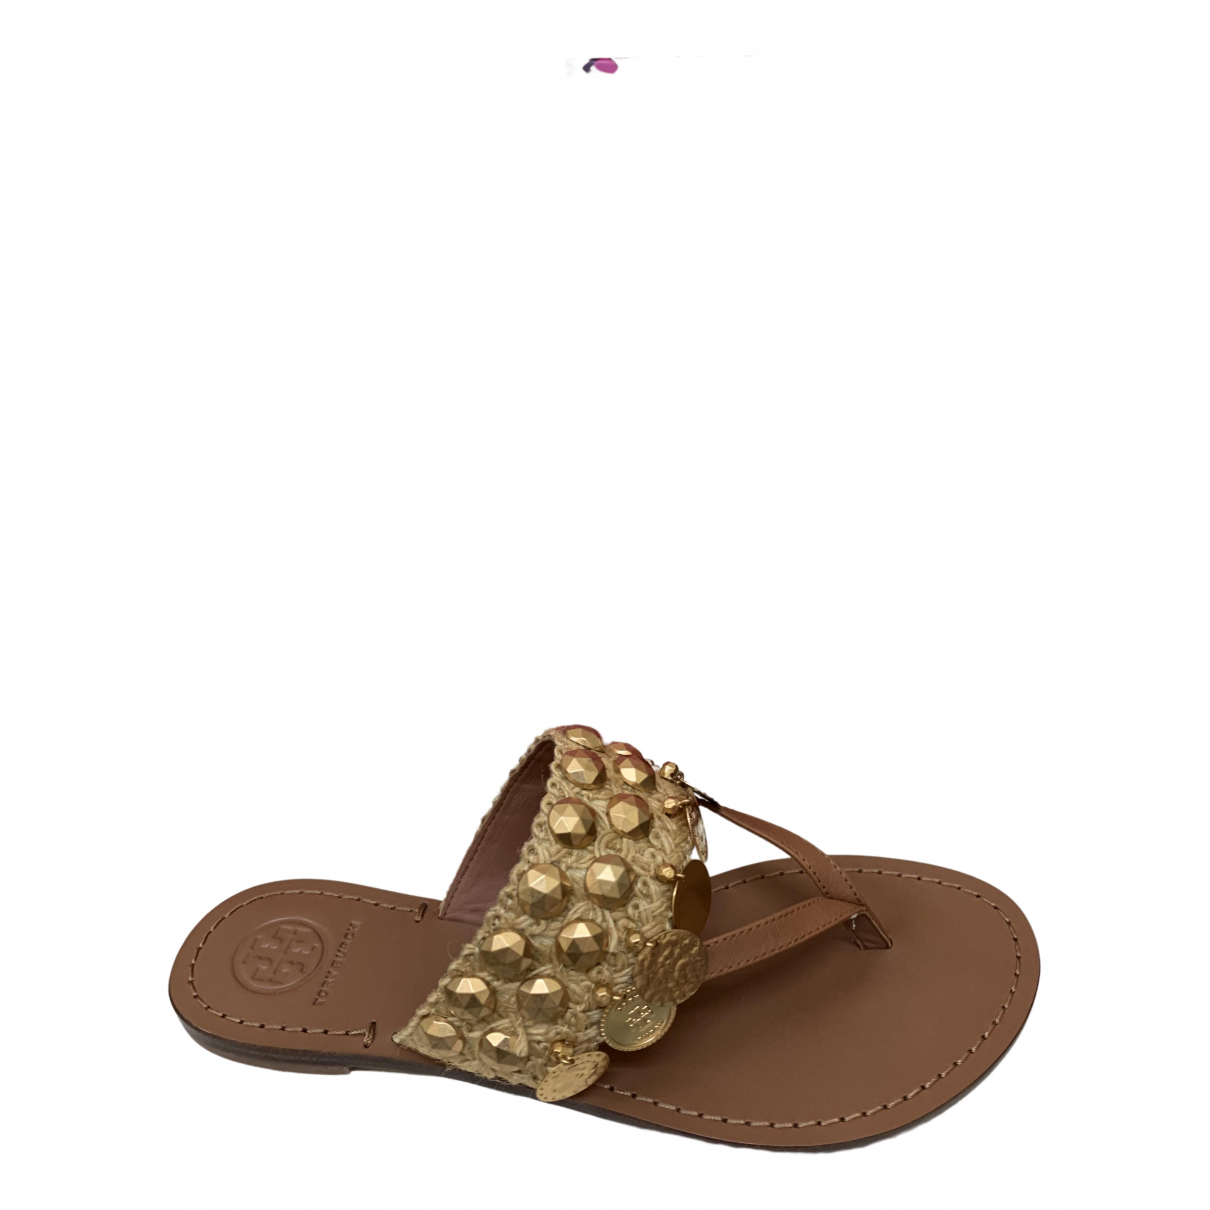 Tory Burch \N Brown Leather Sandals for Women 7 US